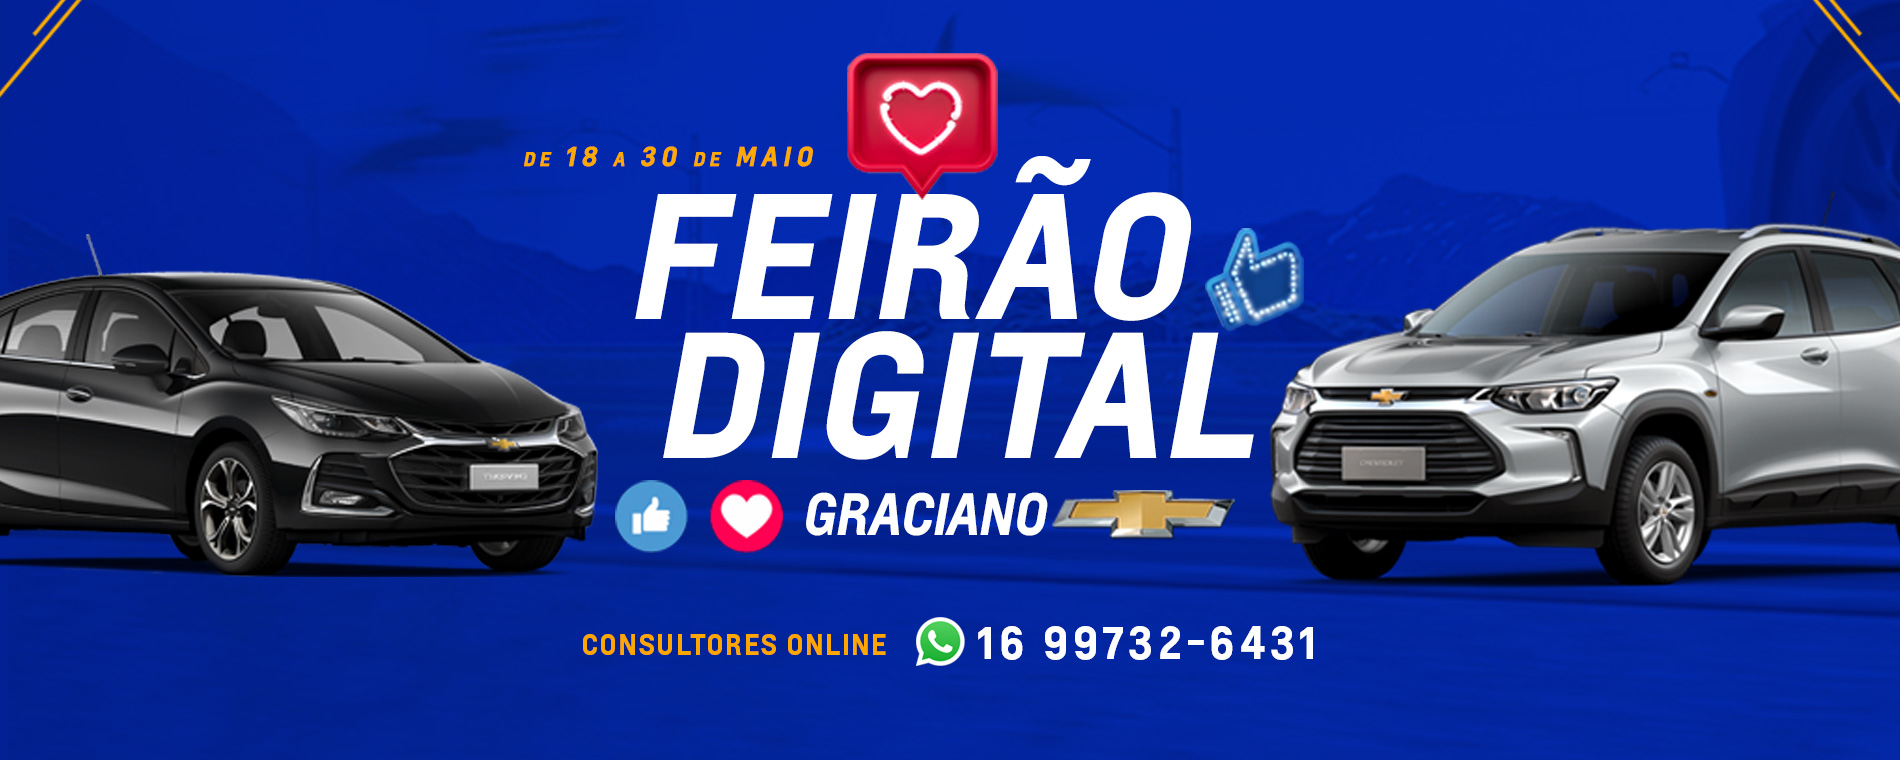 feirao digital